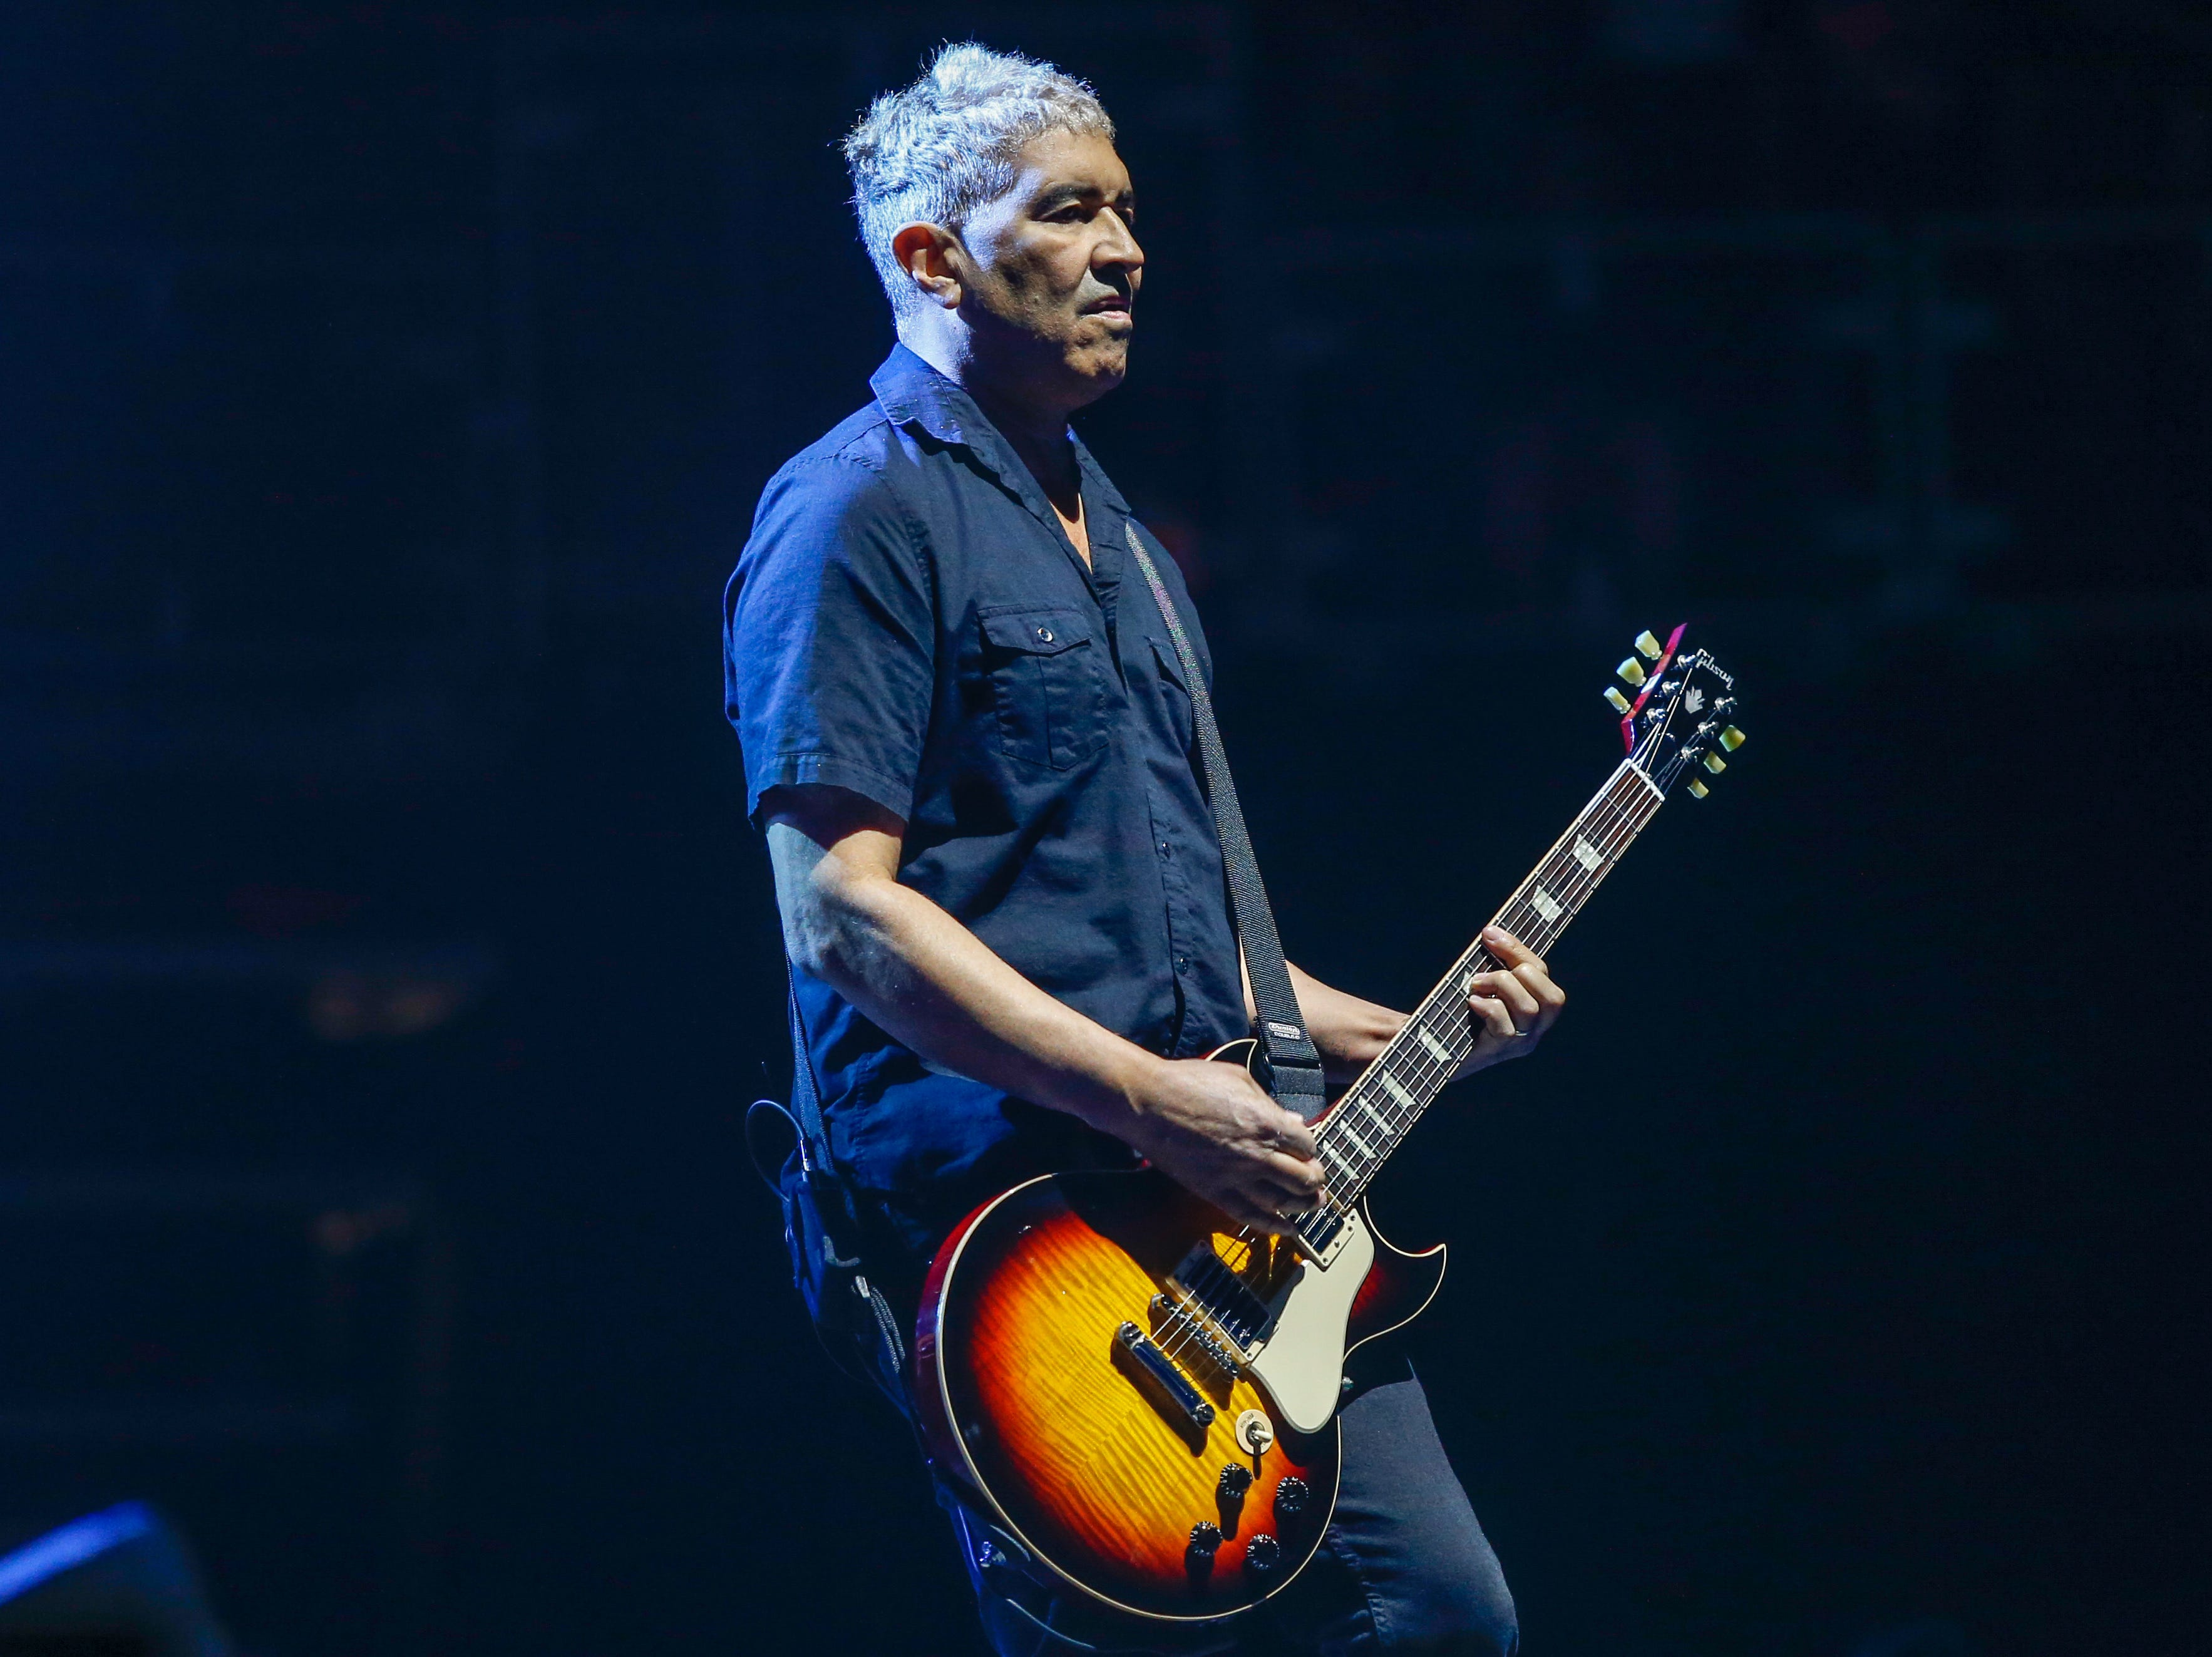 Pat Smear performs on rhythm guitar for the Foo Fighters at Monday night's show at Little Caesars Arena.